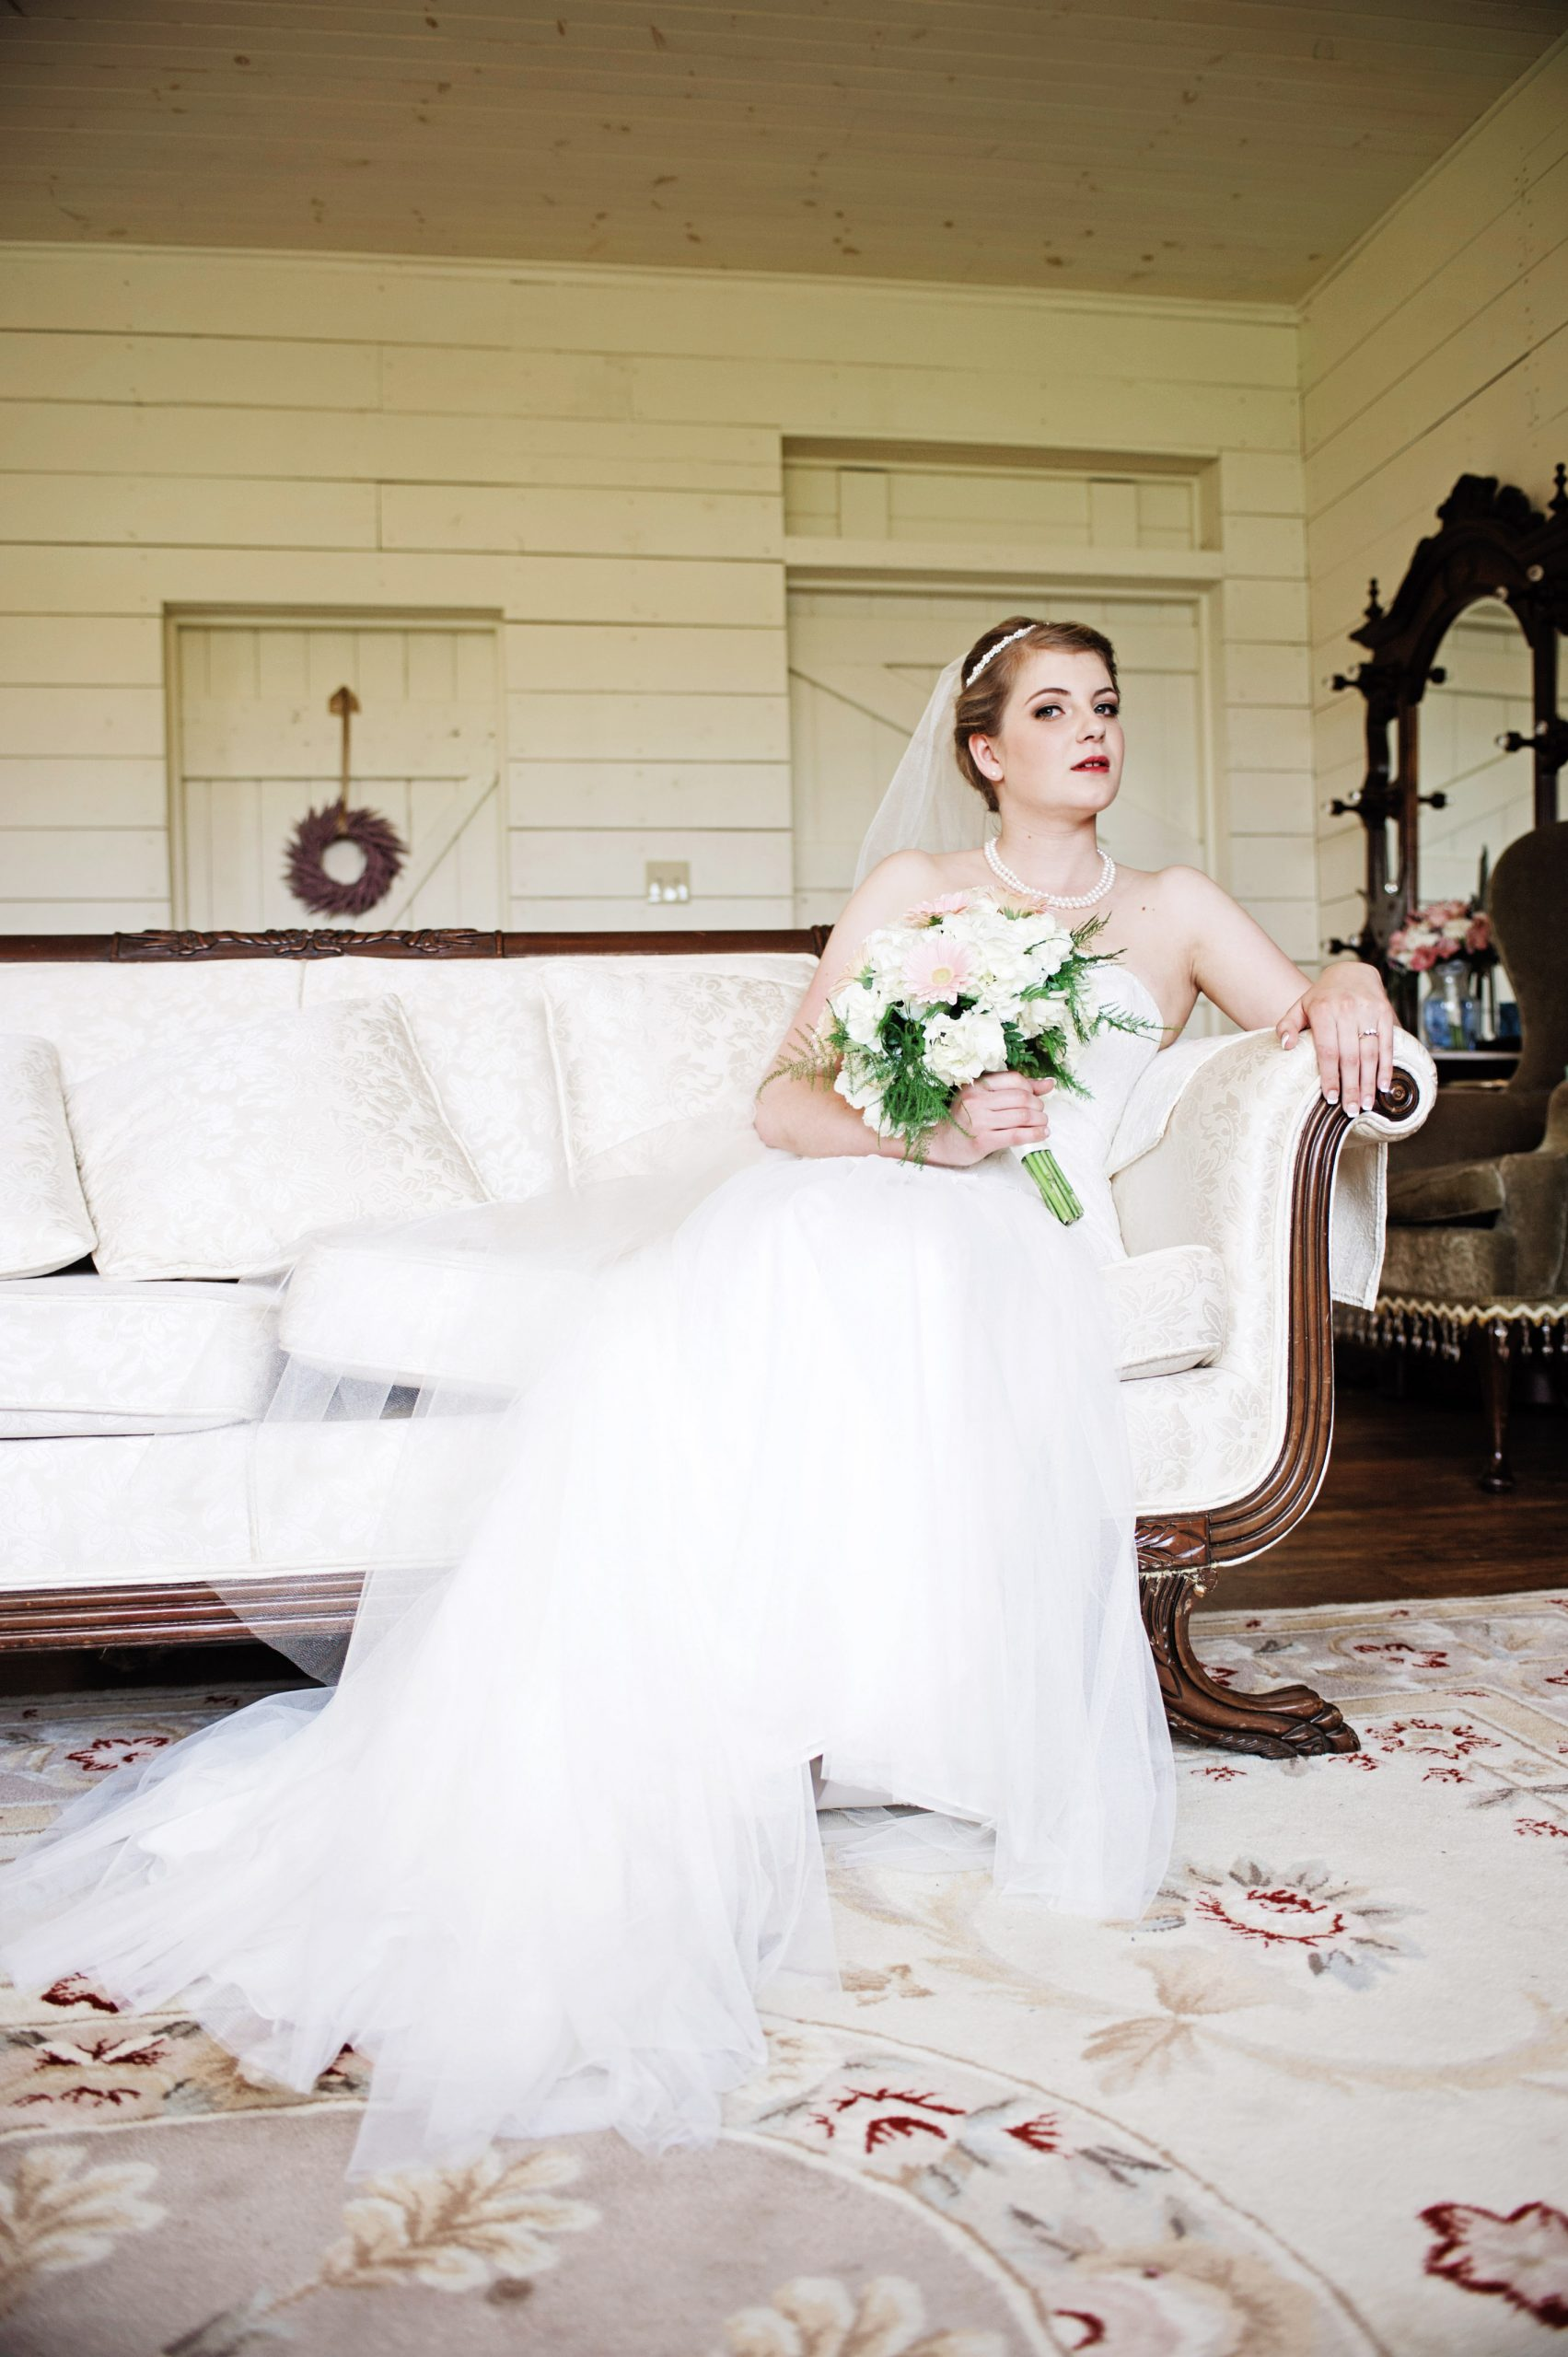 classically elegant, Kady photographs beautifully for Lovefusion Photography at Lakeview Farms of York, PA. Featured in Dream Weddings.